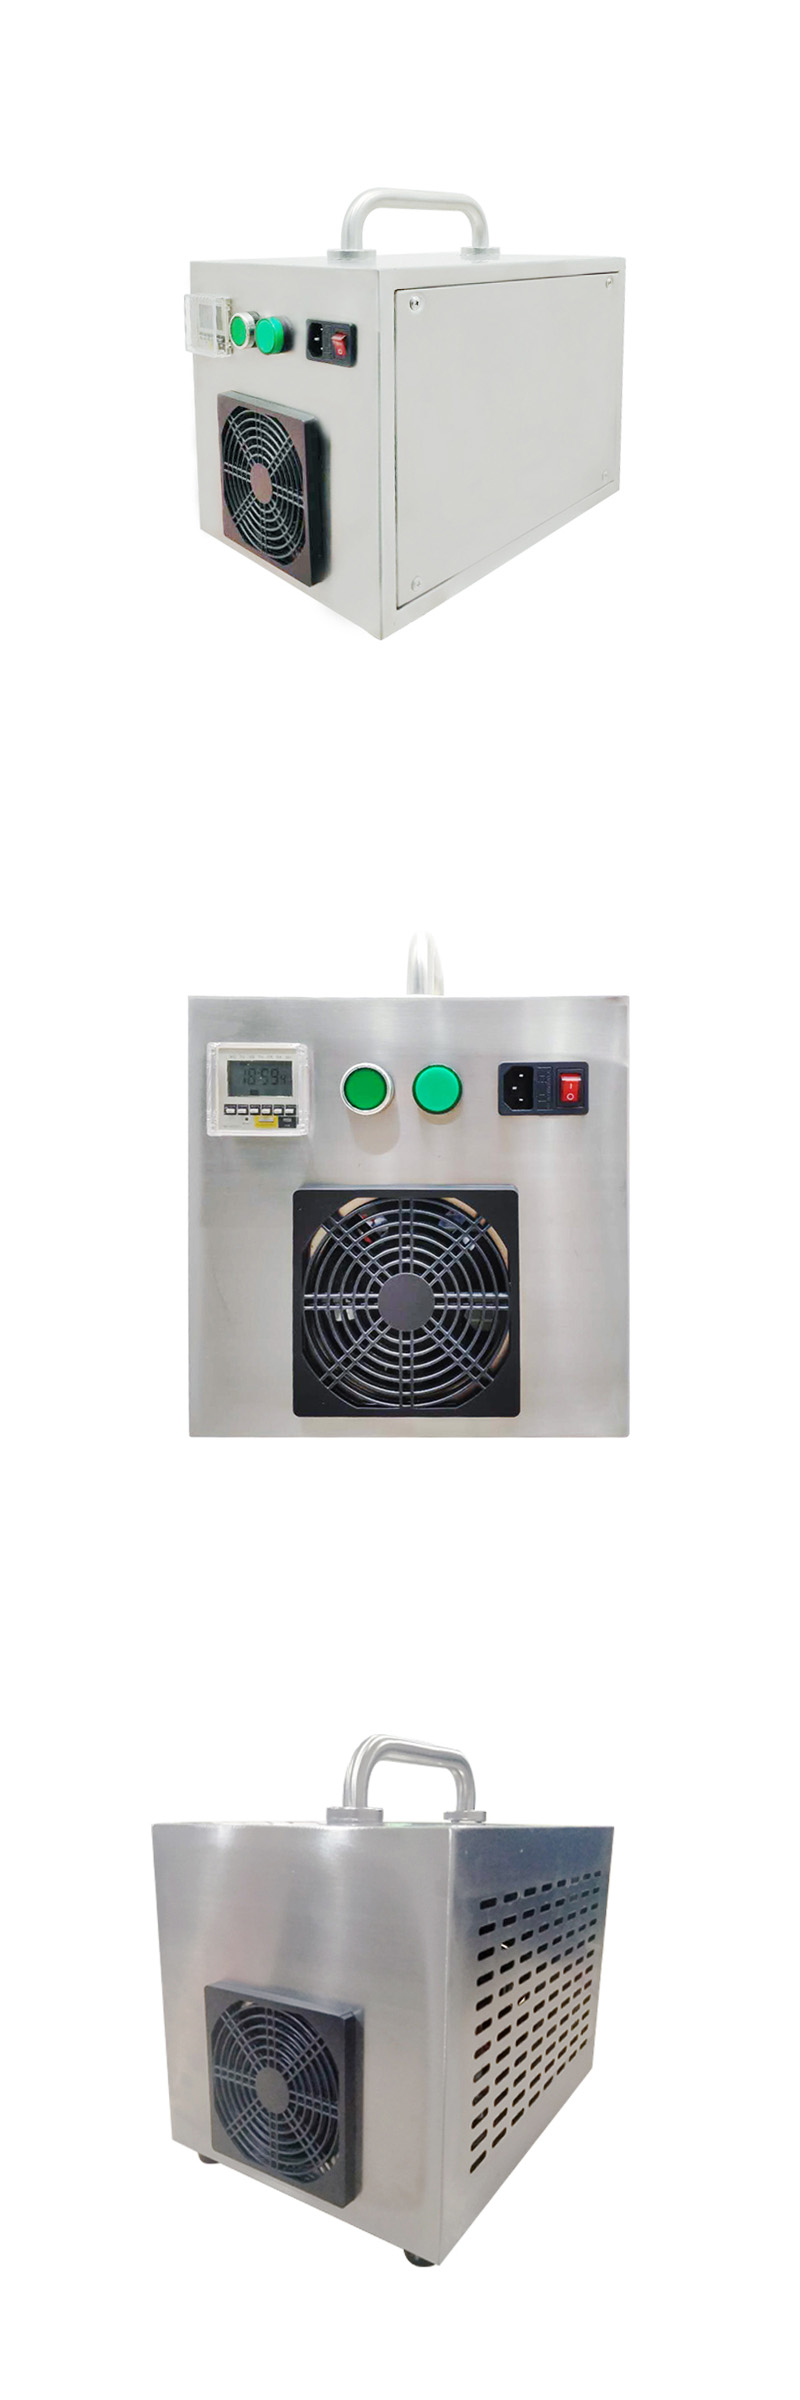 Portable Air Cooled Commercial Ozone Generator For Home